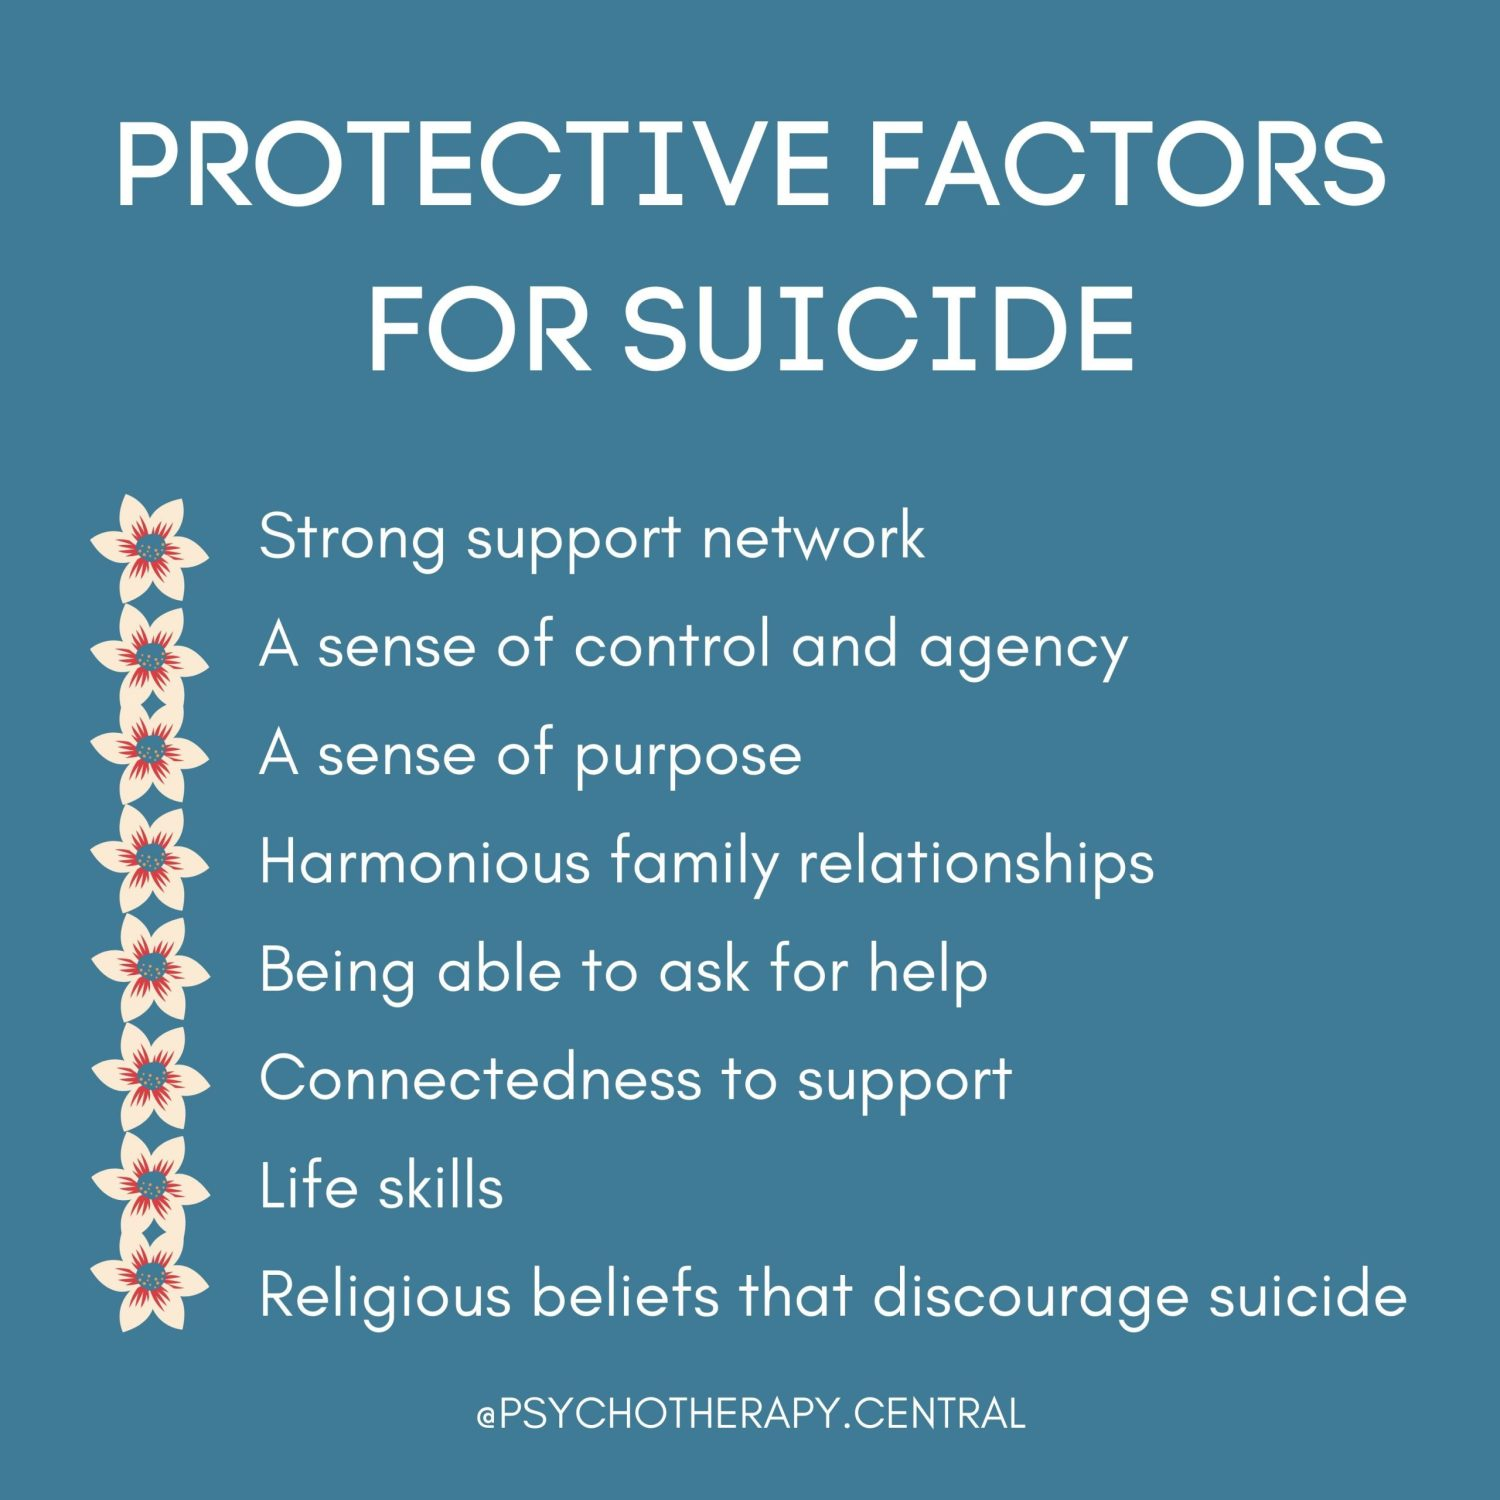 PROTECTIVE FACTORS FOR SUICIDE